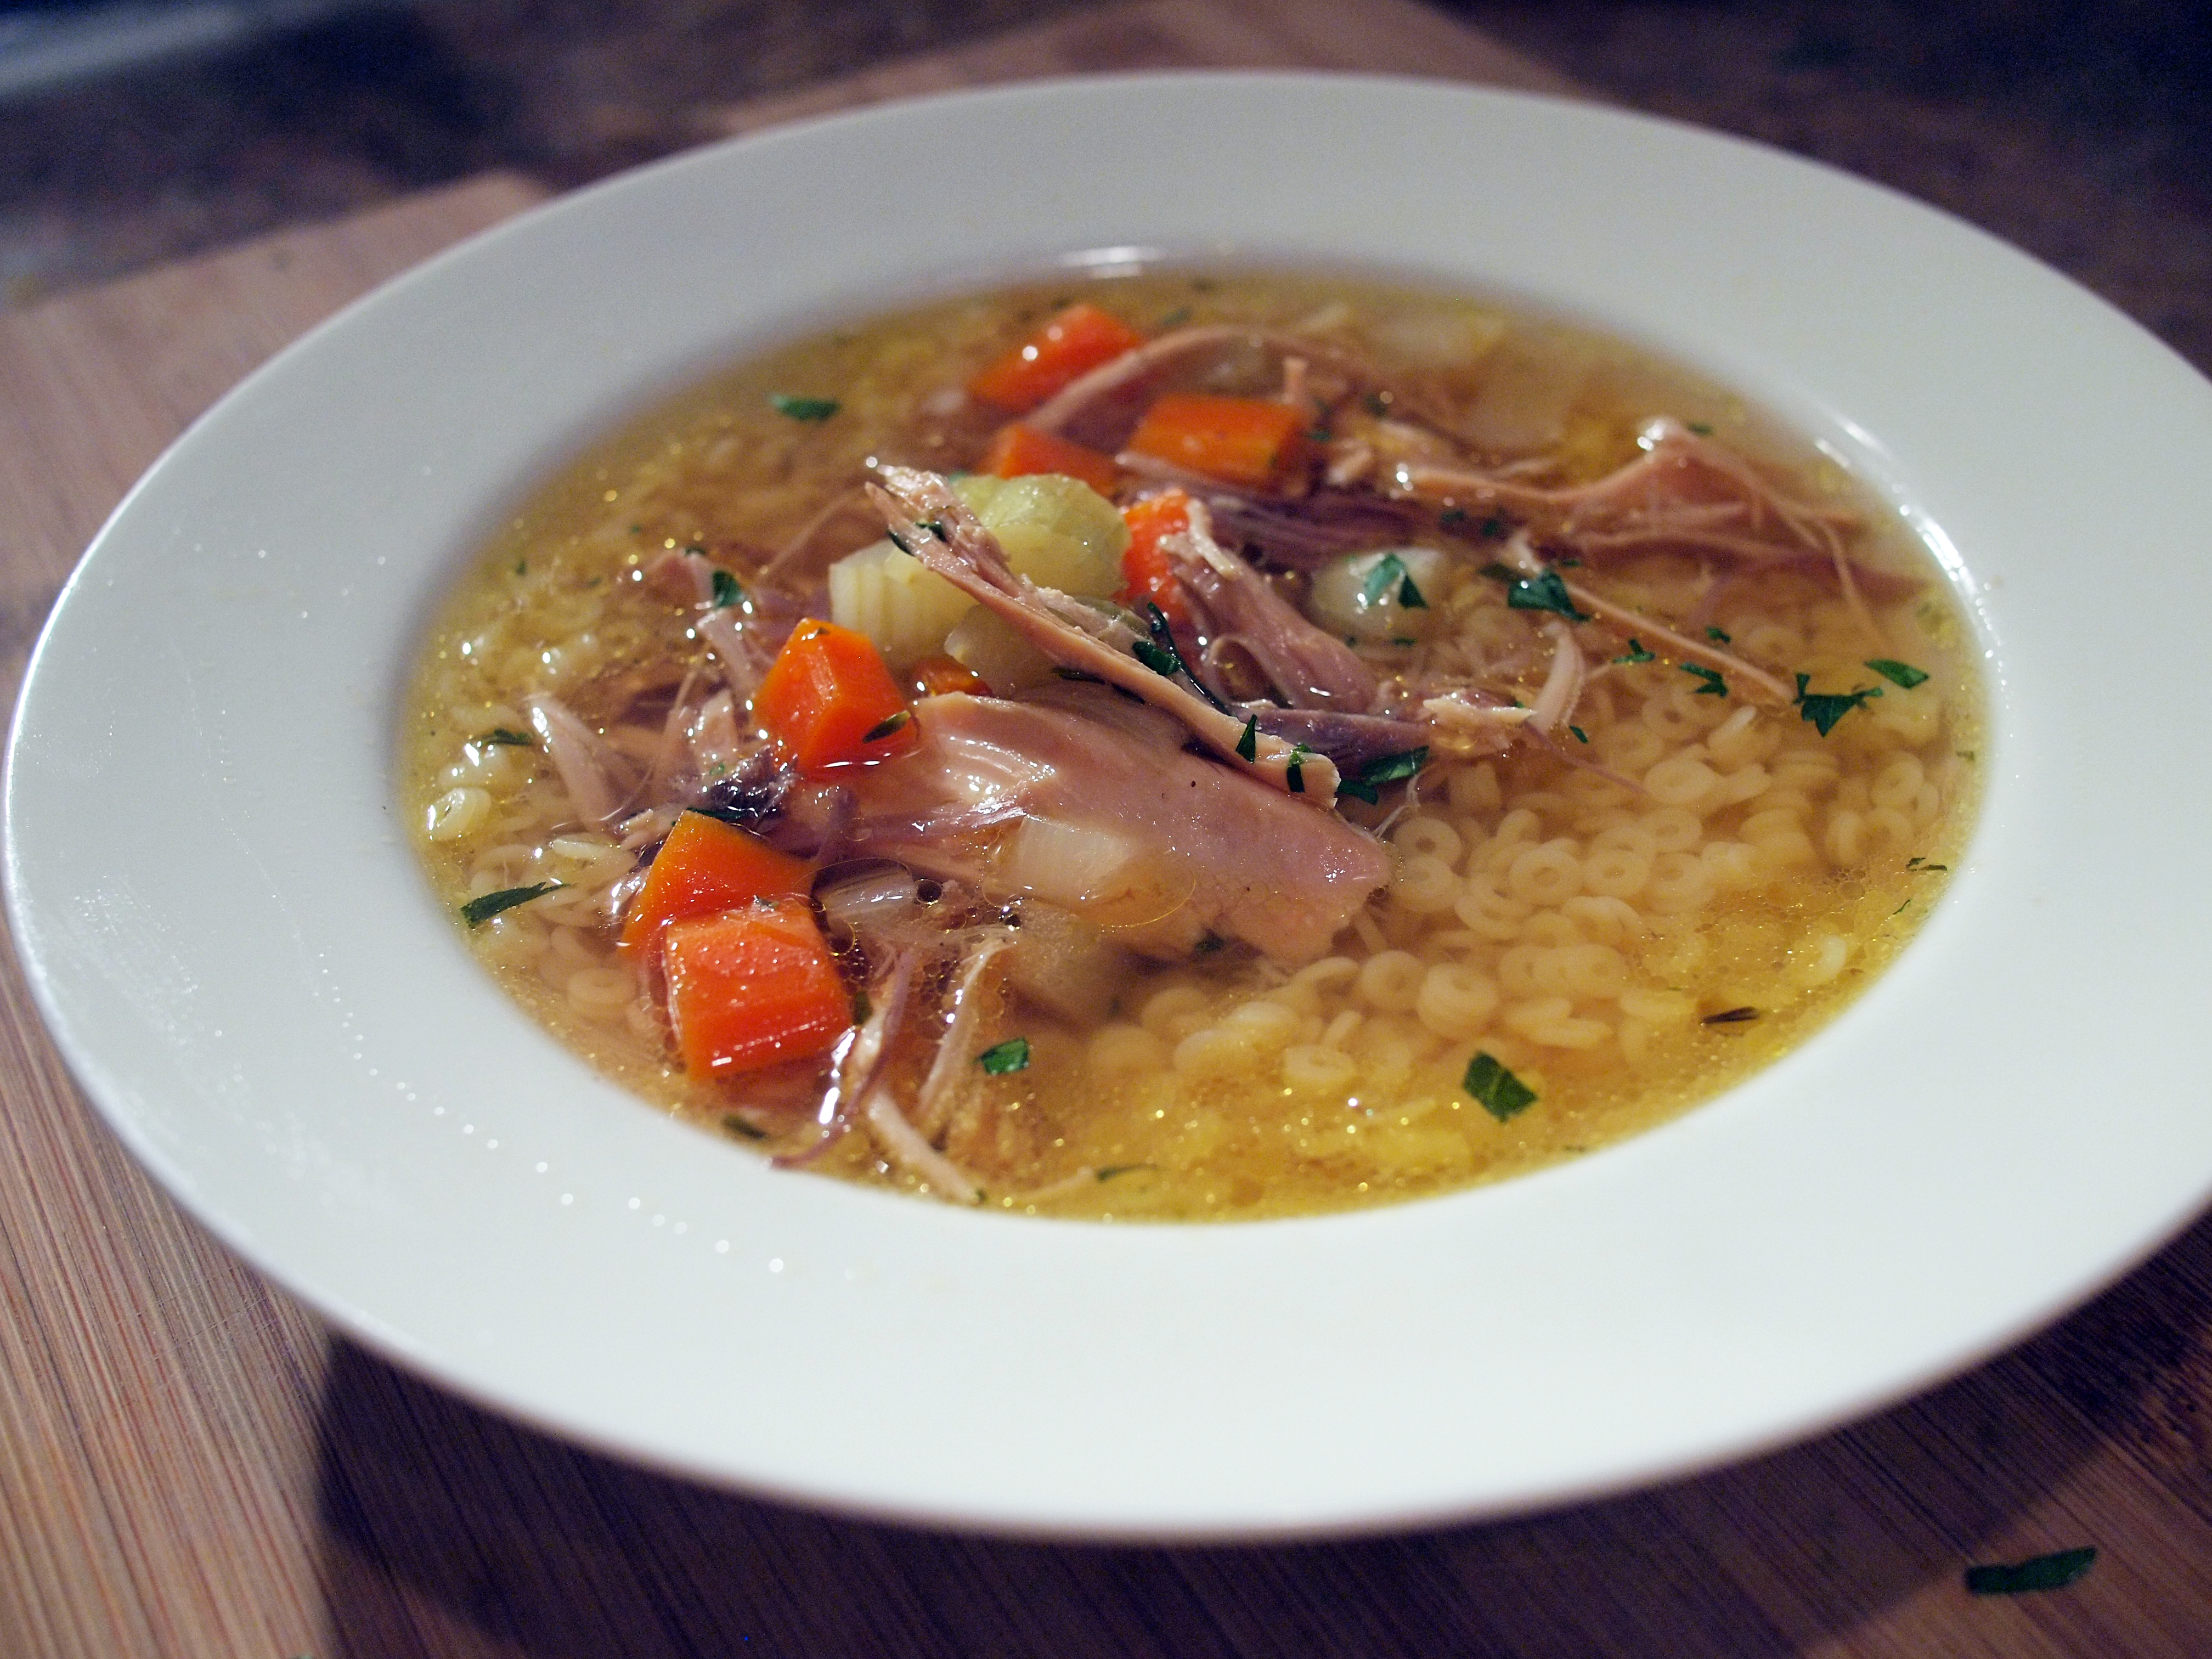 Chicken Soups And Stews Chicken Noodle Soup.jpg